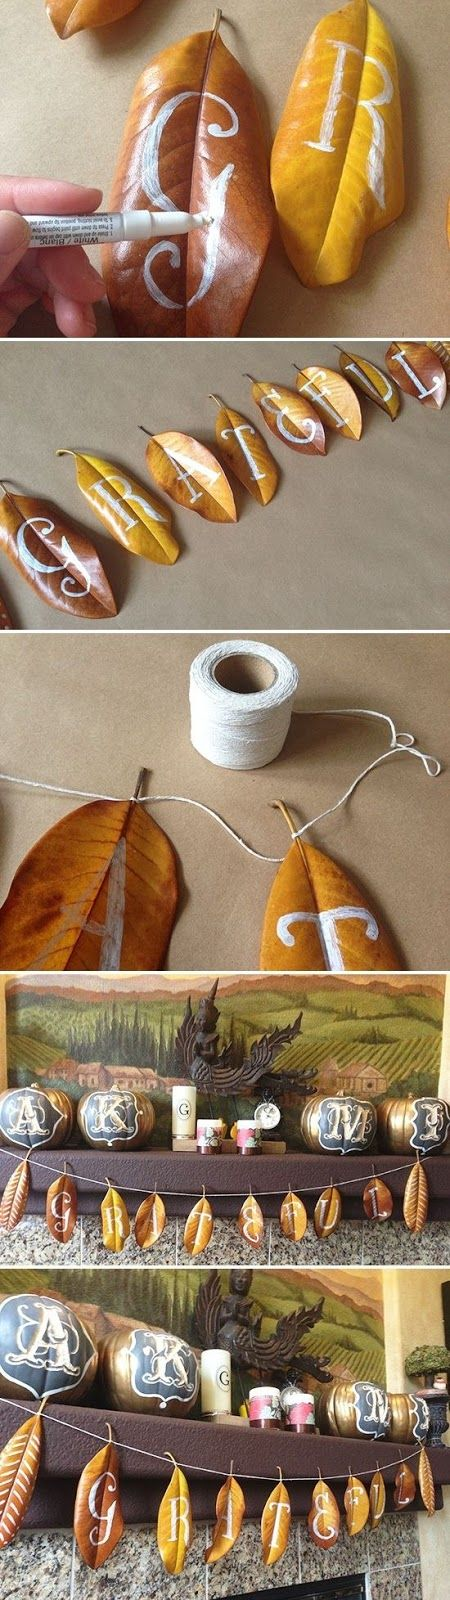 10 DIY Seasonal Dorm Decorations | http://www.hercampus.com/school/or-state/10-diy-seasonal-dorm-decorations